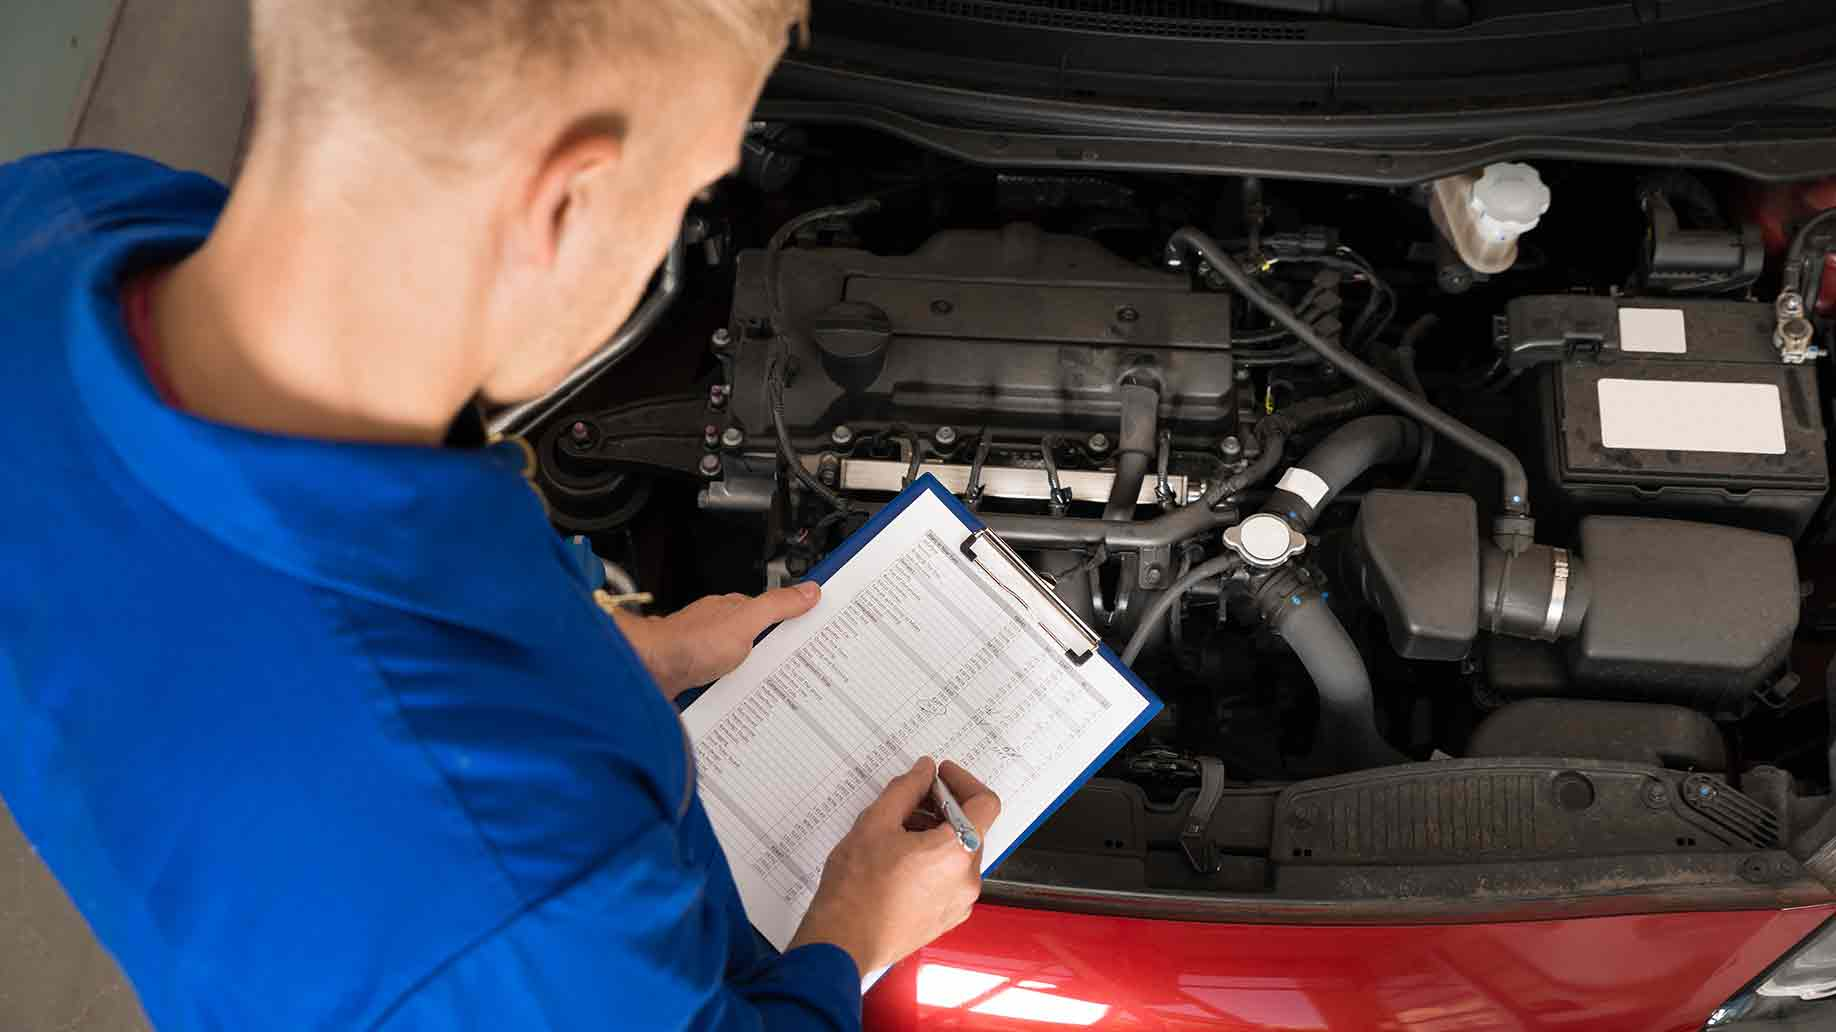 mechanic standing near car writing on clipboard in garage